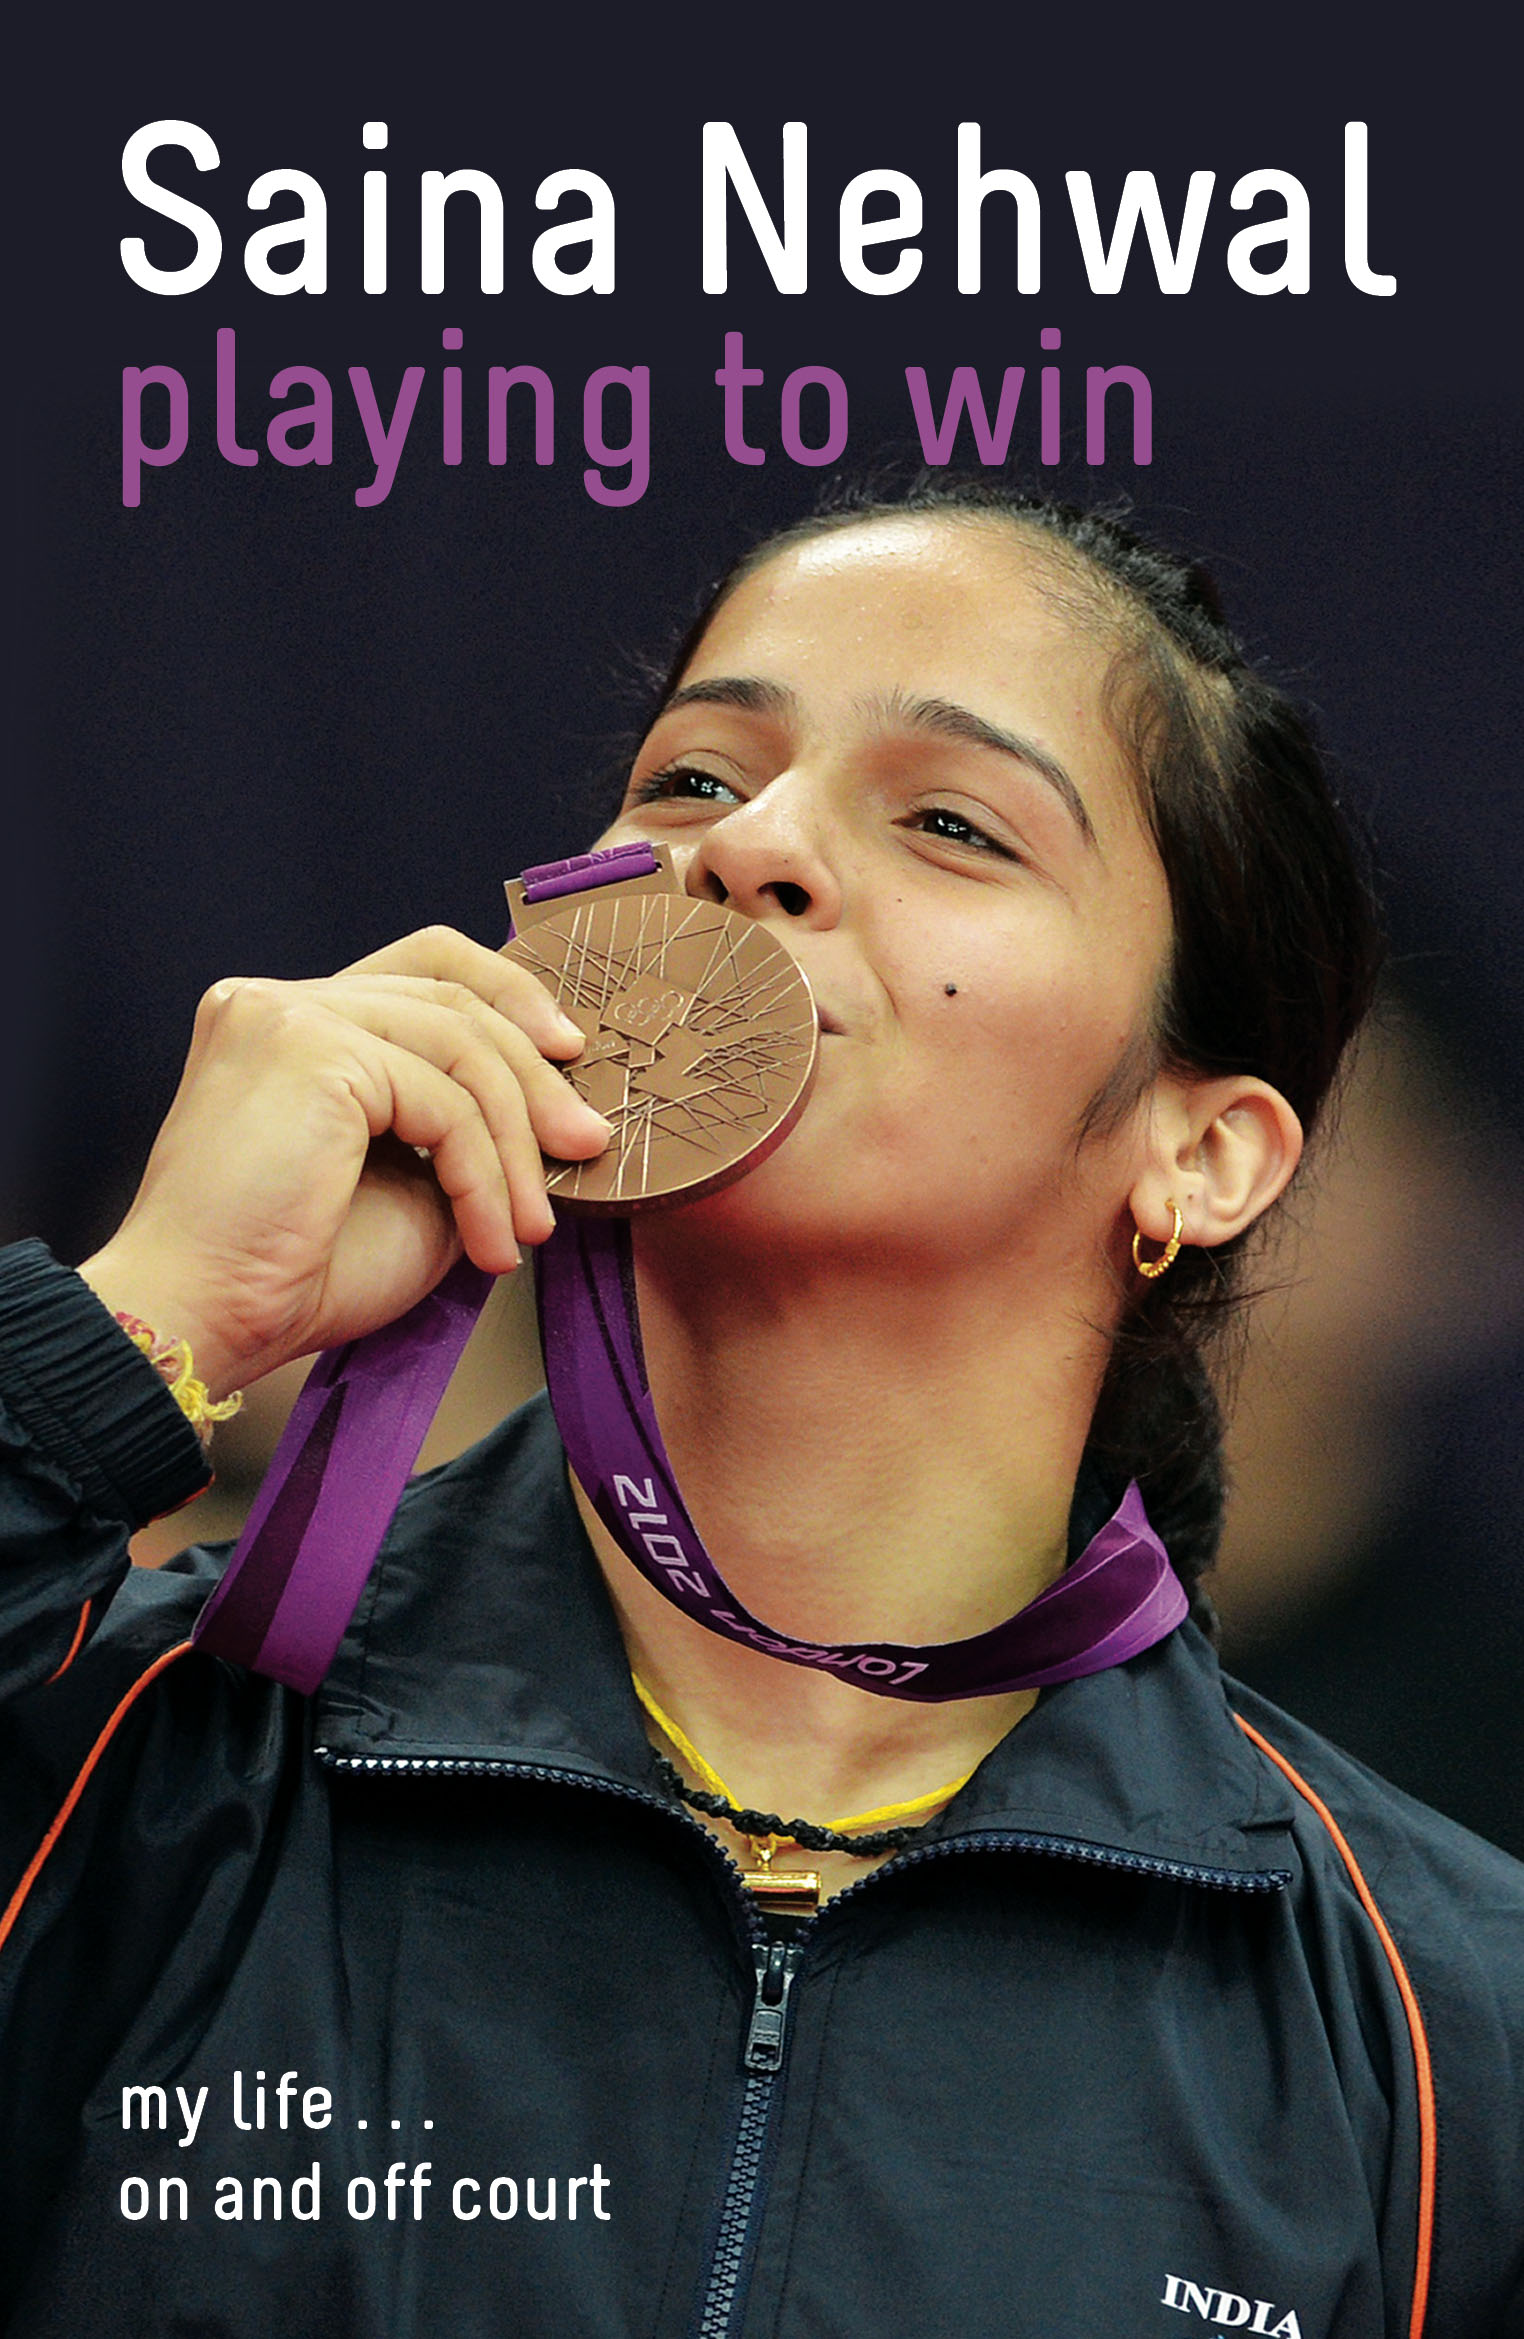 information on saina nehwal Hello everyone today in this post i will tell you some important information about saina nehwal indian badminton player we will discuss about saina nehwal.